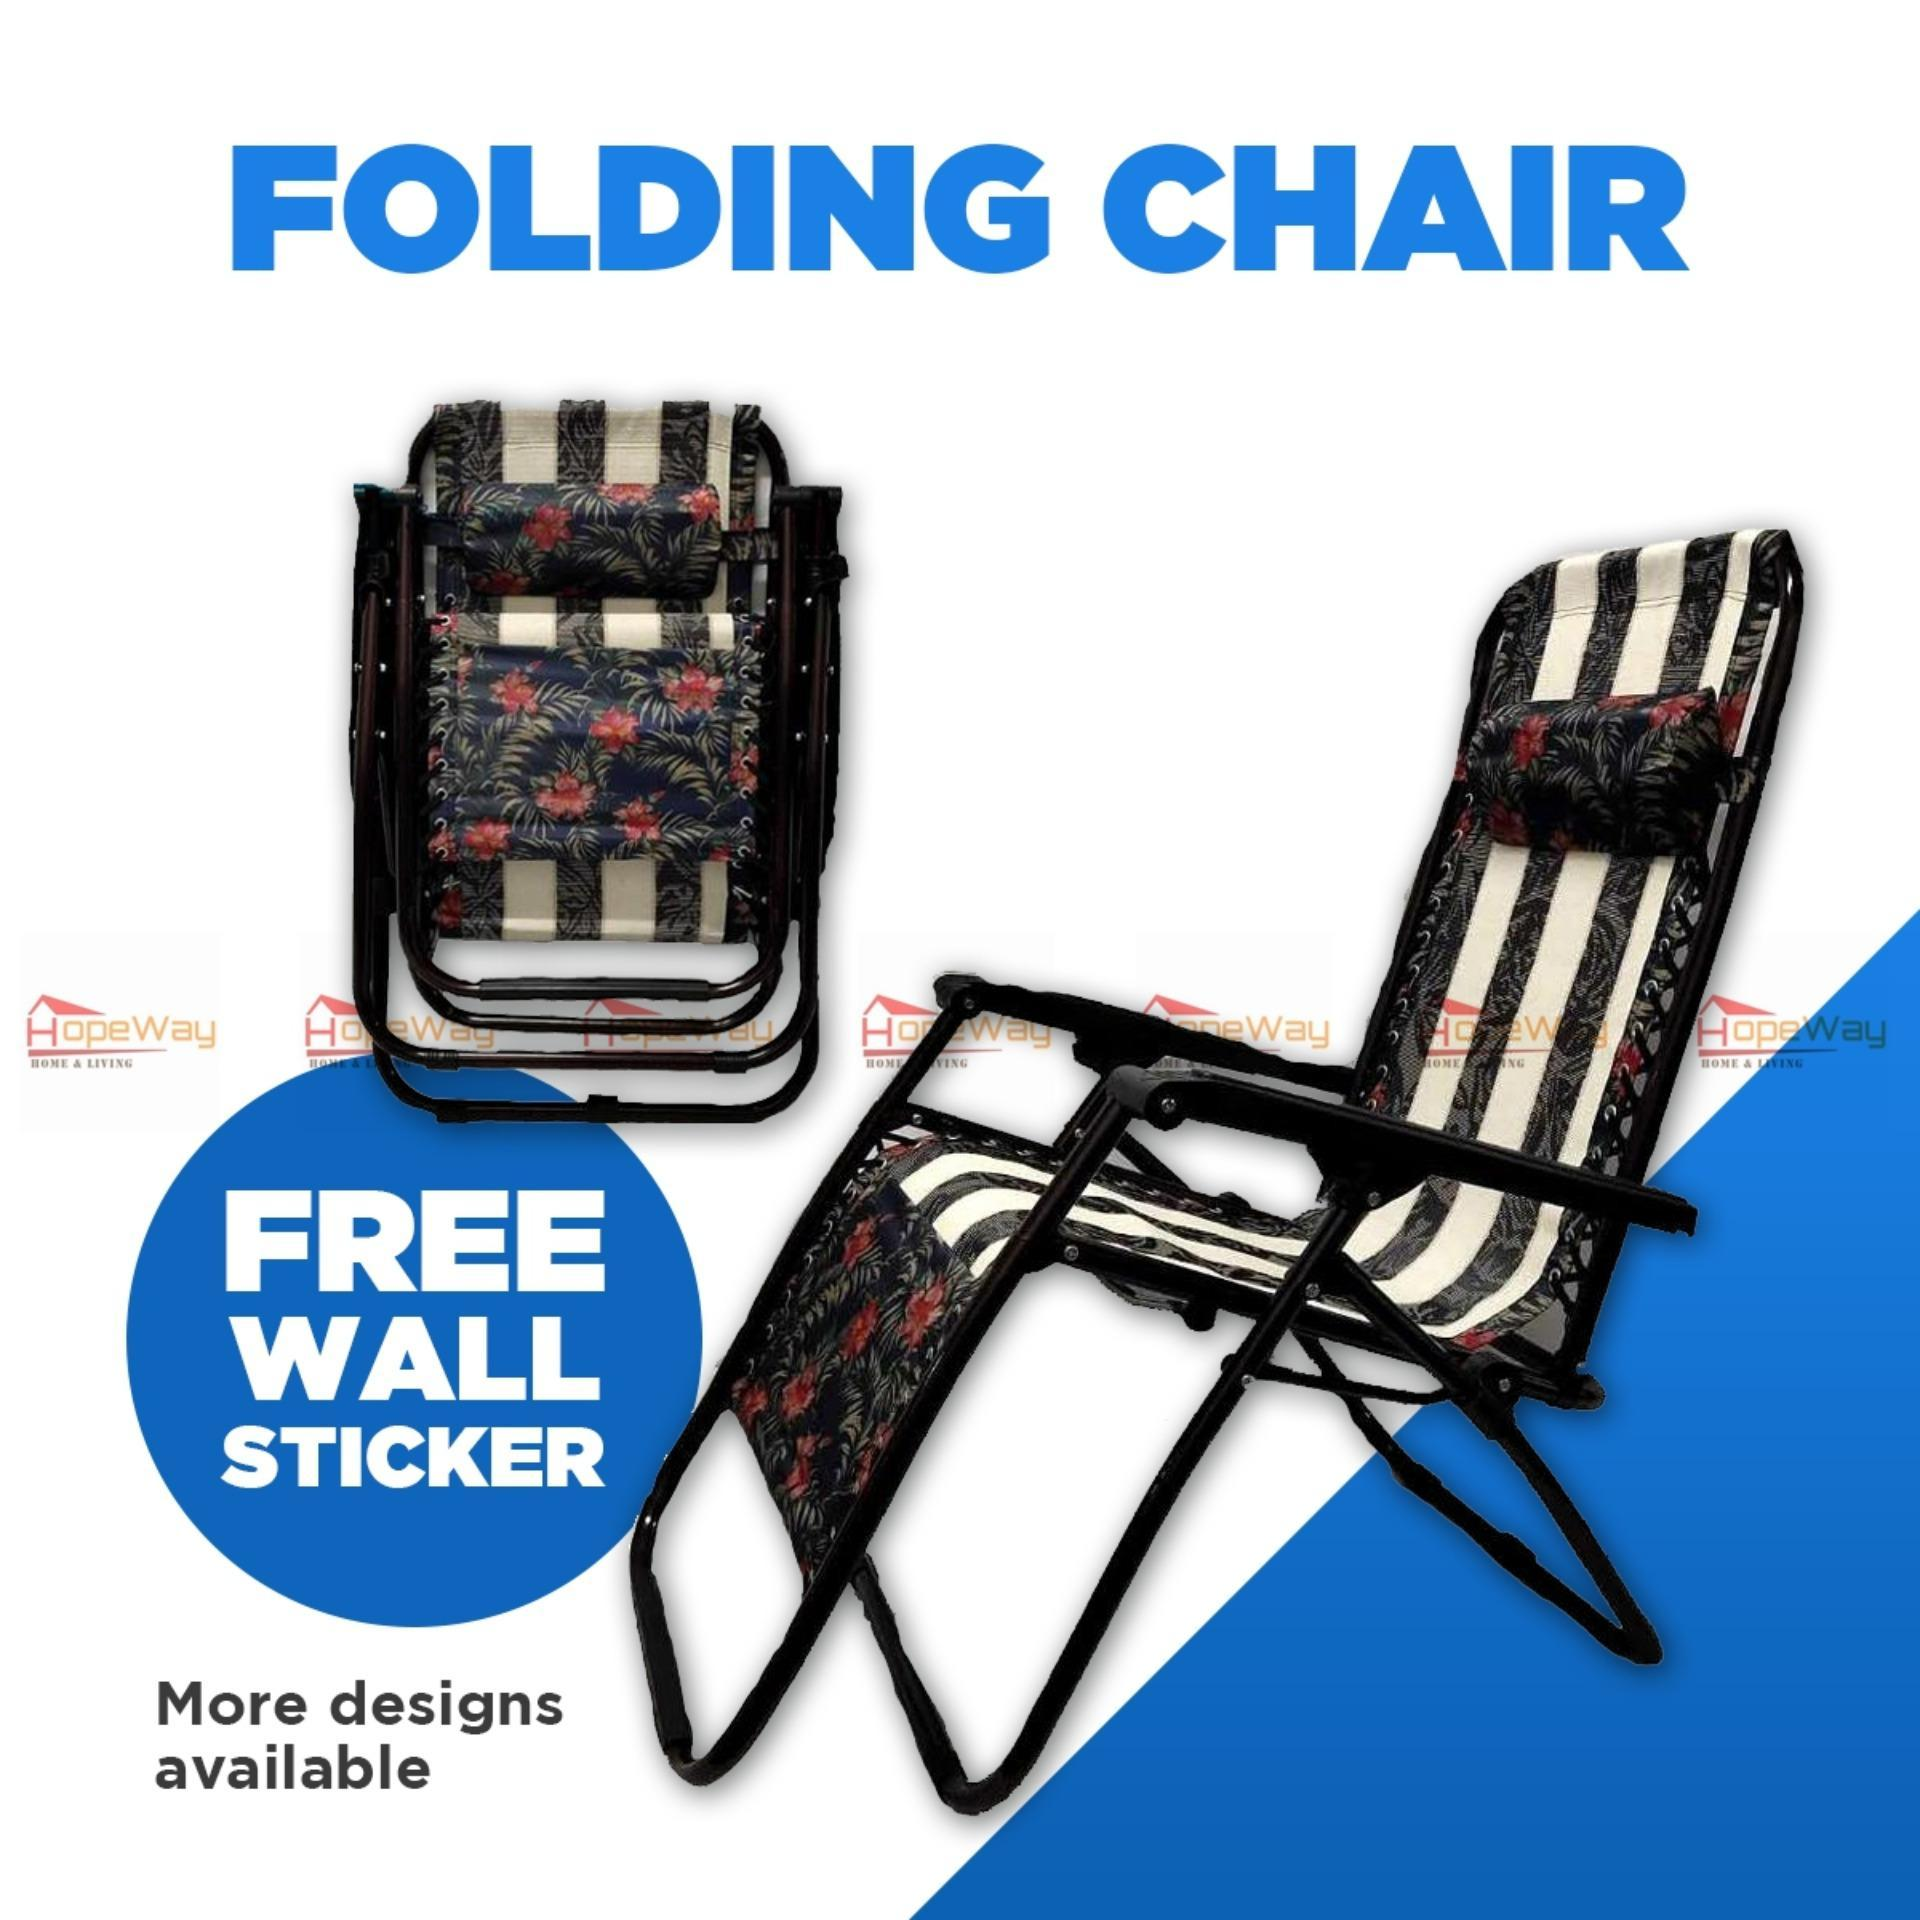 folding yard chair riser recliner chairs for the elderly reviews outdoor sale patio prices brands review in bed zero gravity best gift random color